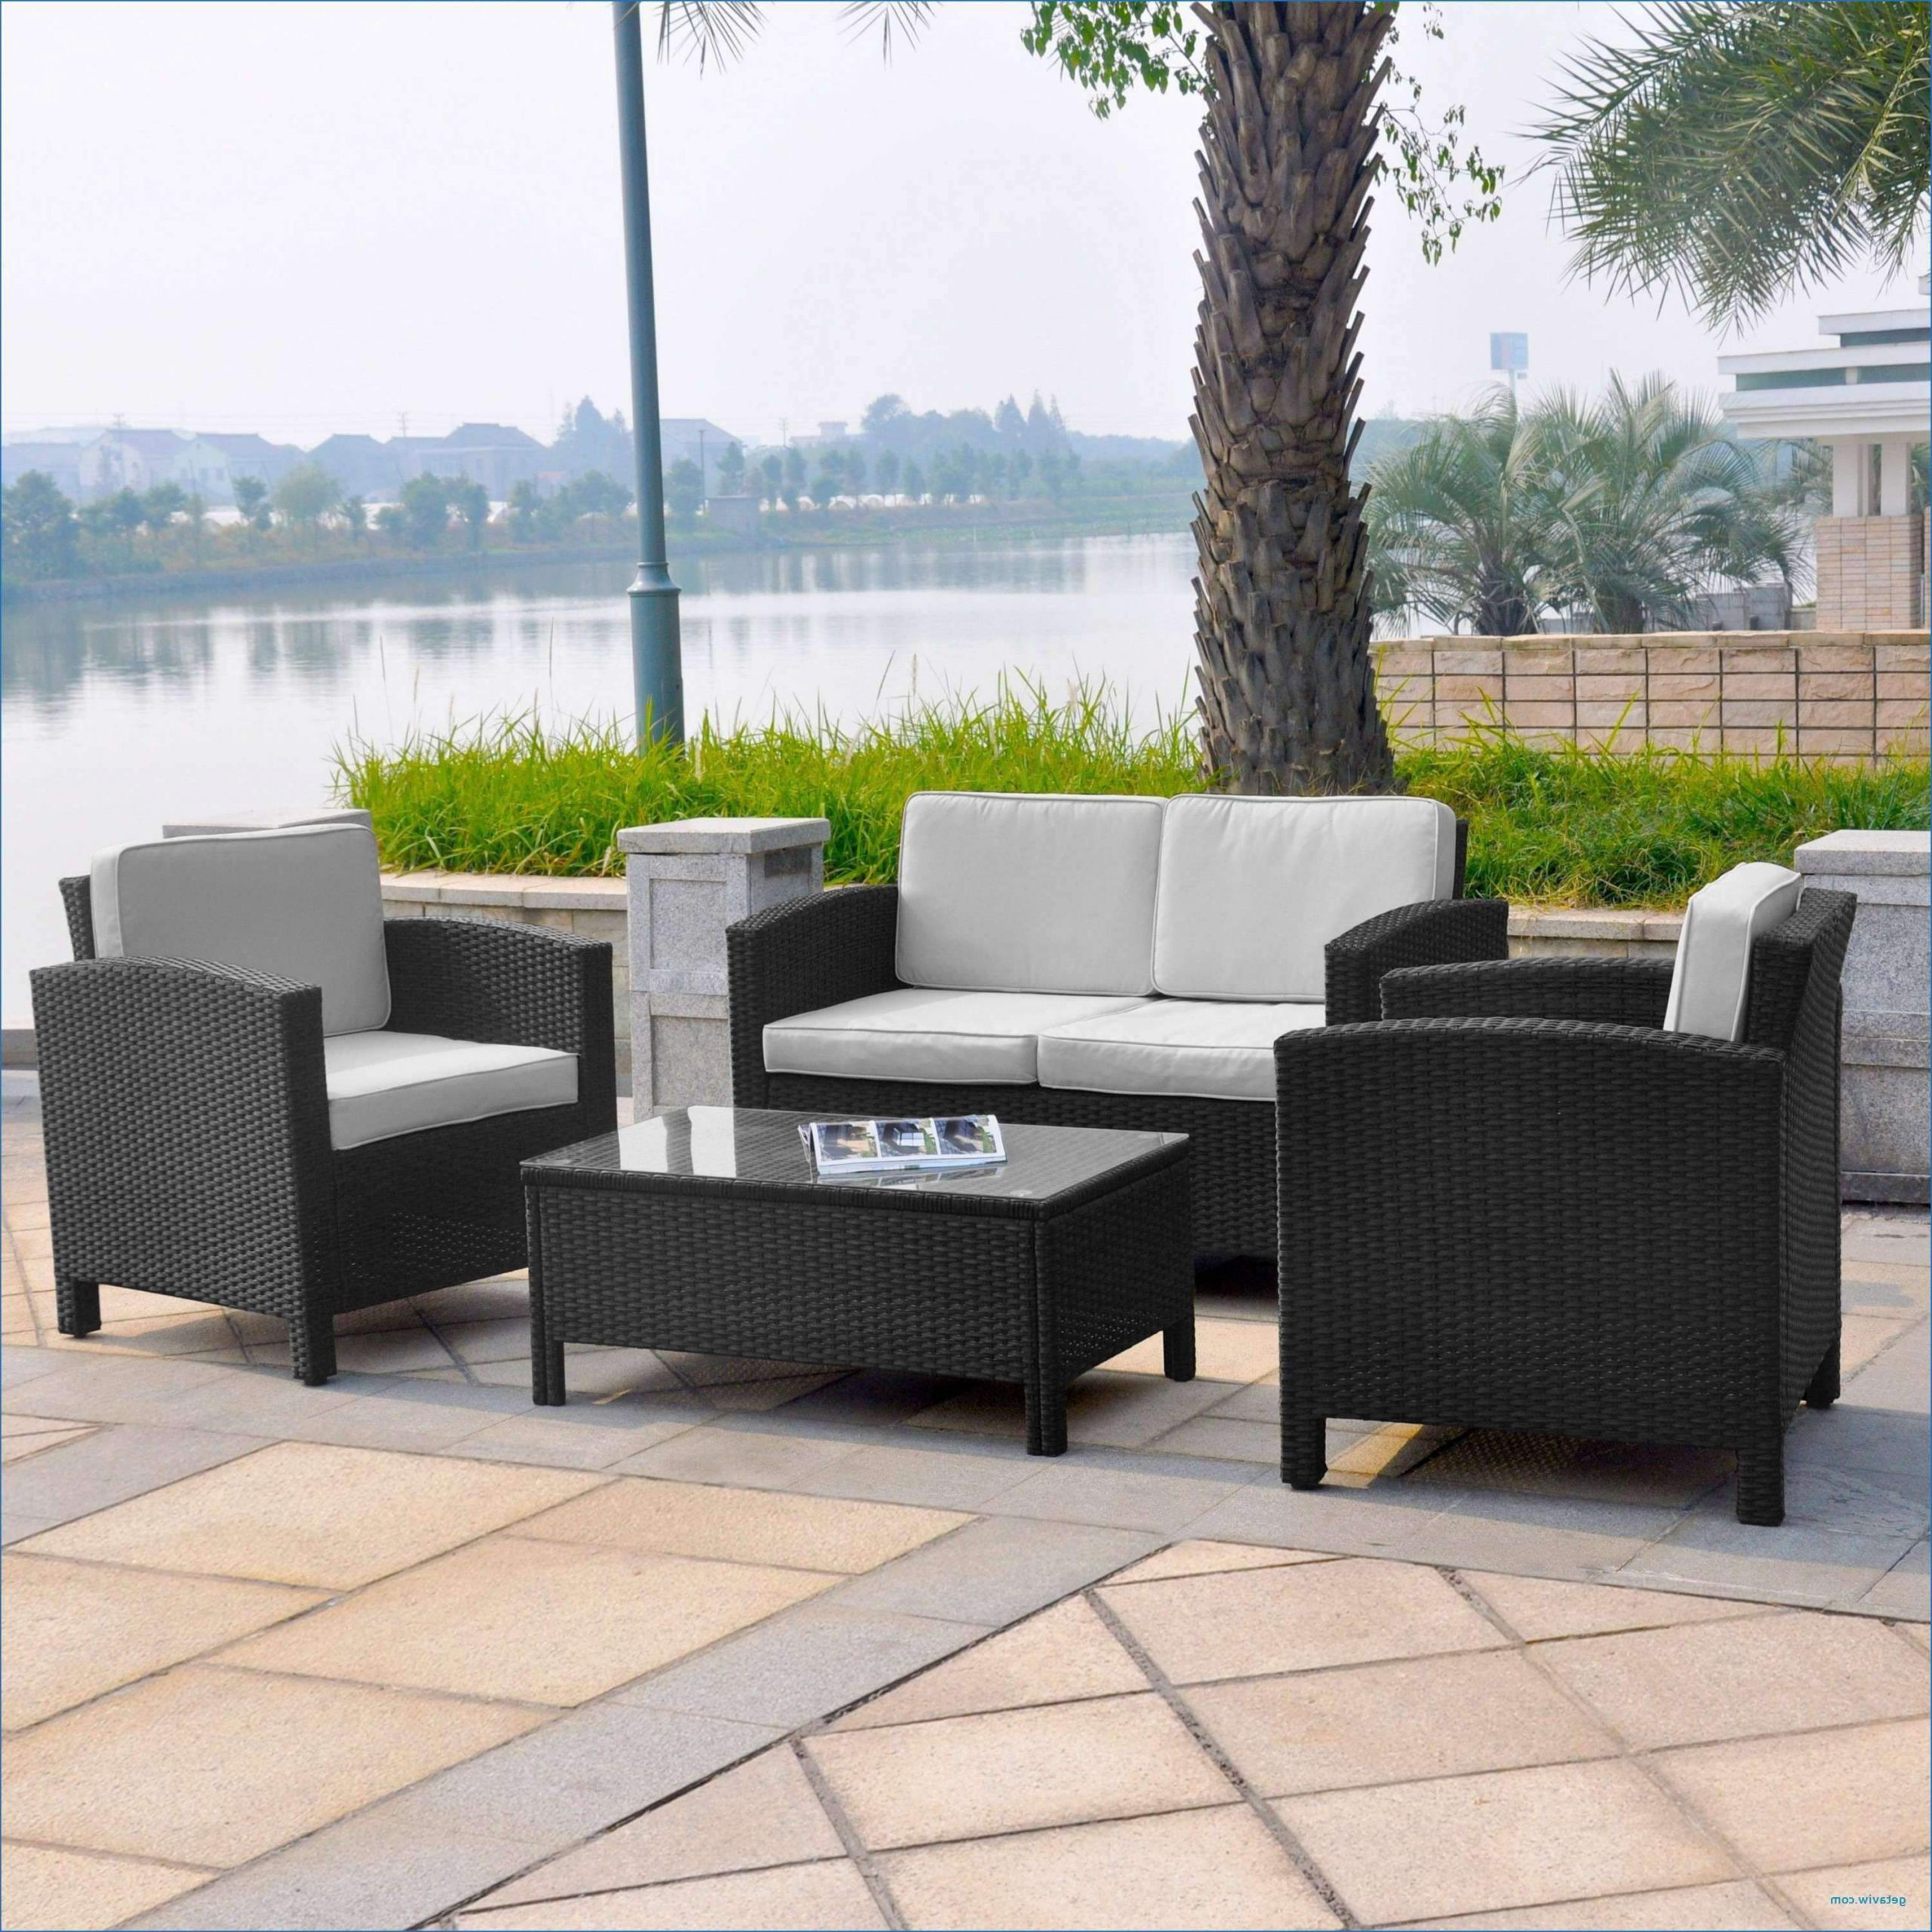 gartenmobel lounge set aluminium gartenmobel lounge sessel c3hwegpz of kleine sessel gunstig